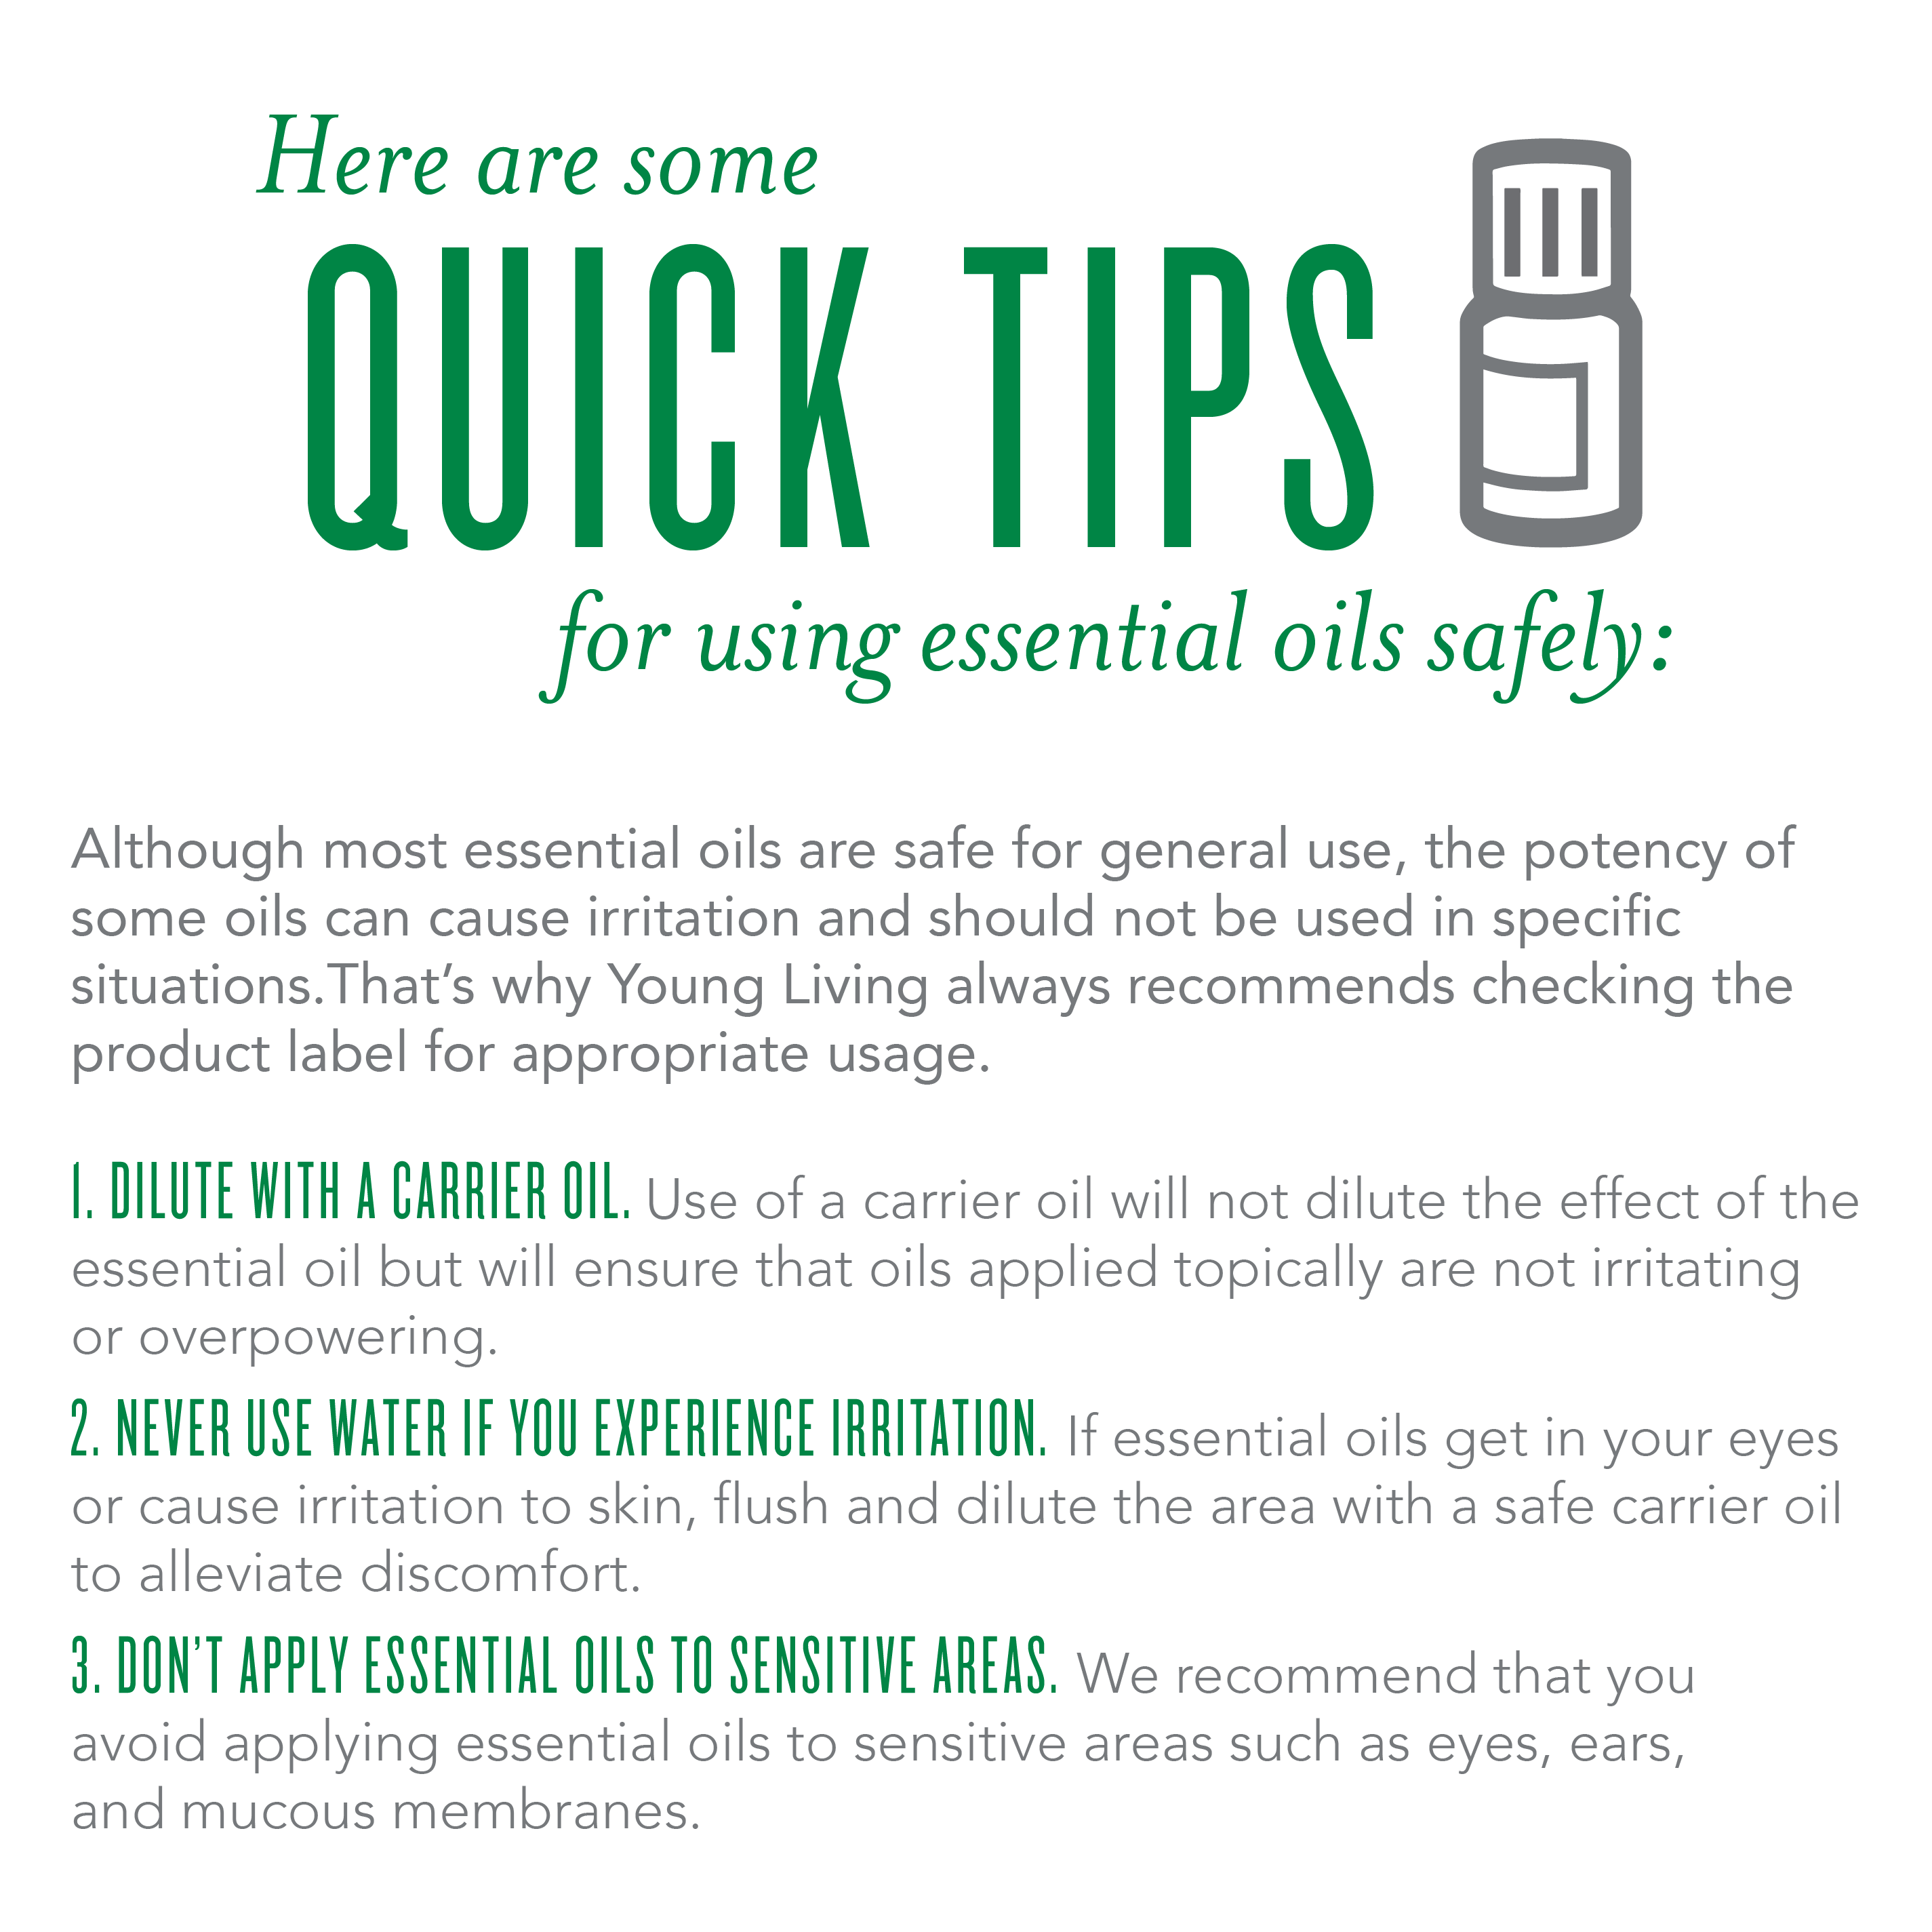 Watch How to Safely Use Essential Oils Topically video